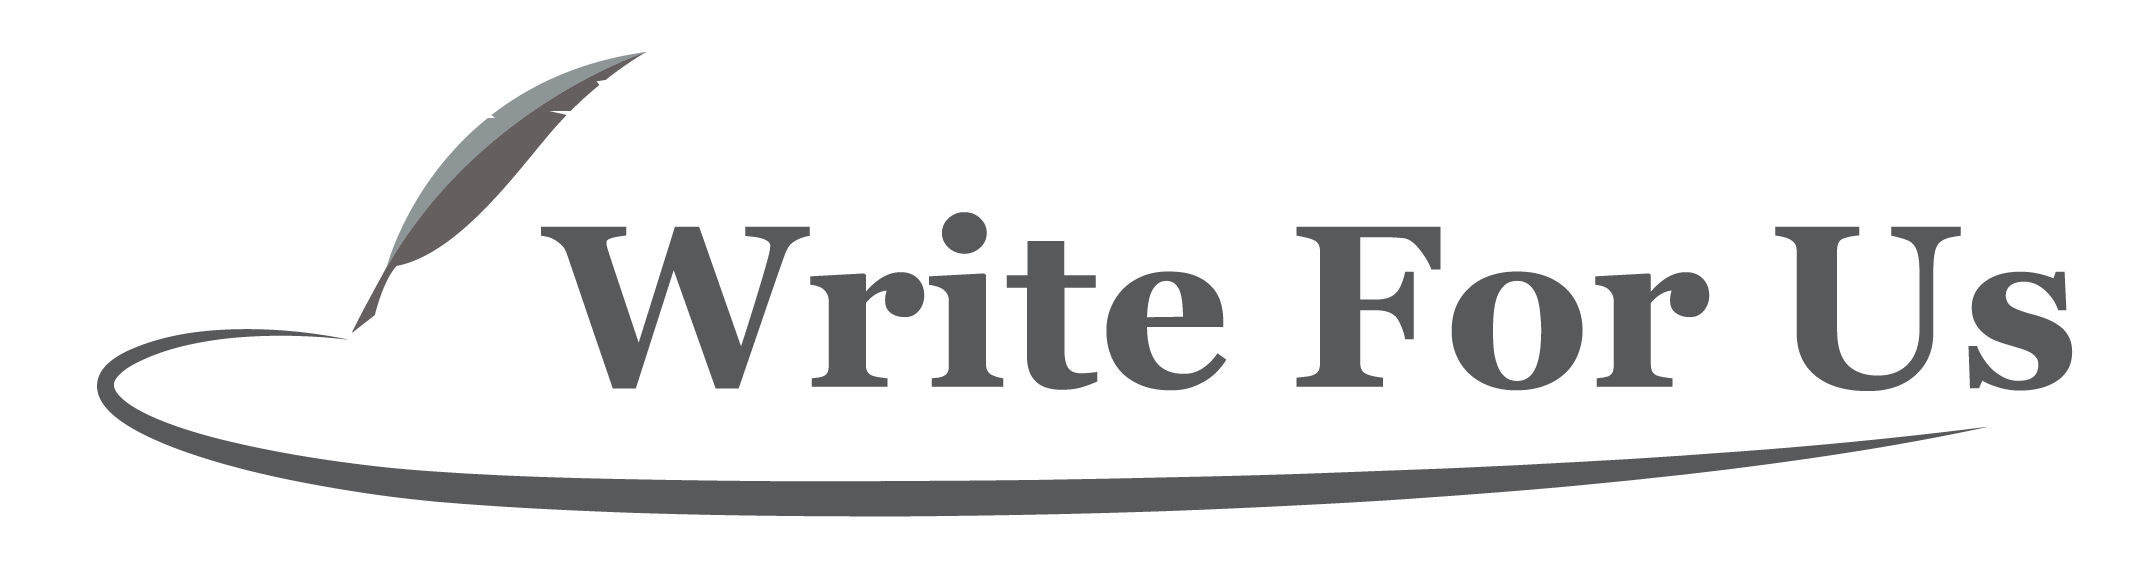 Write For Us Blog Management